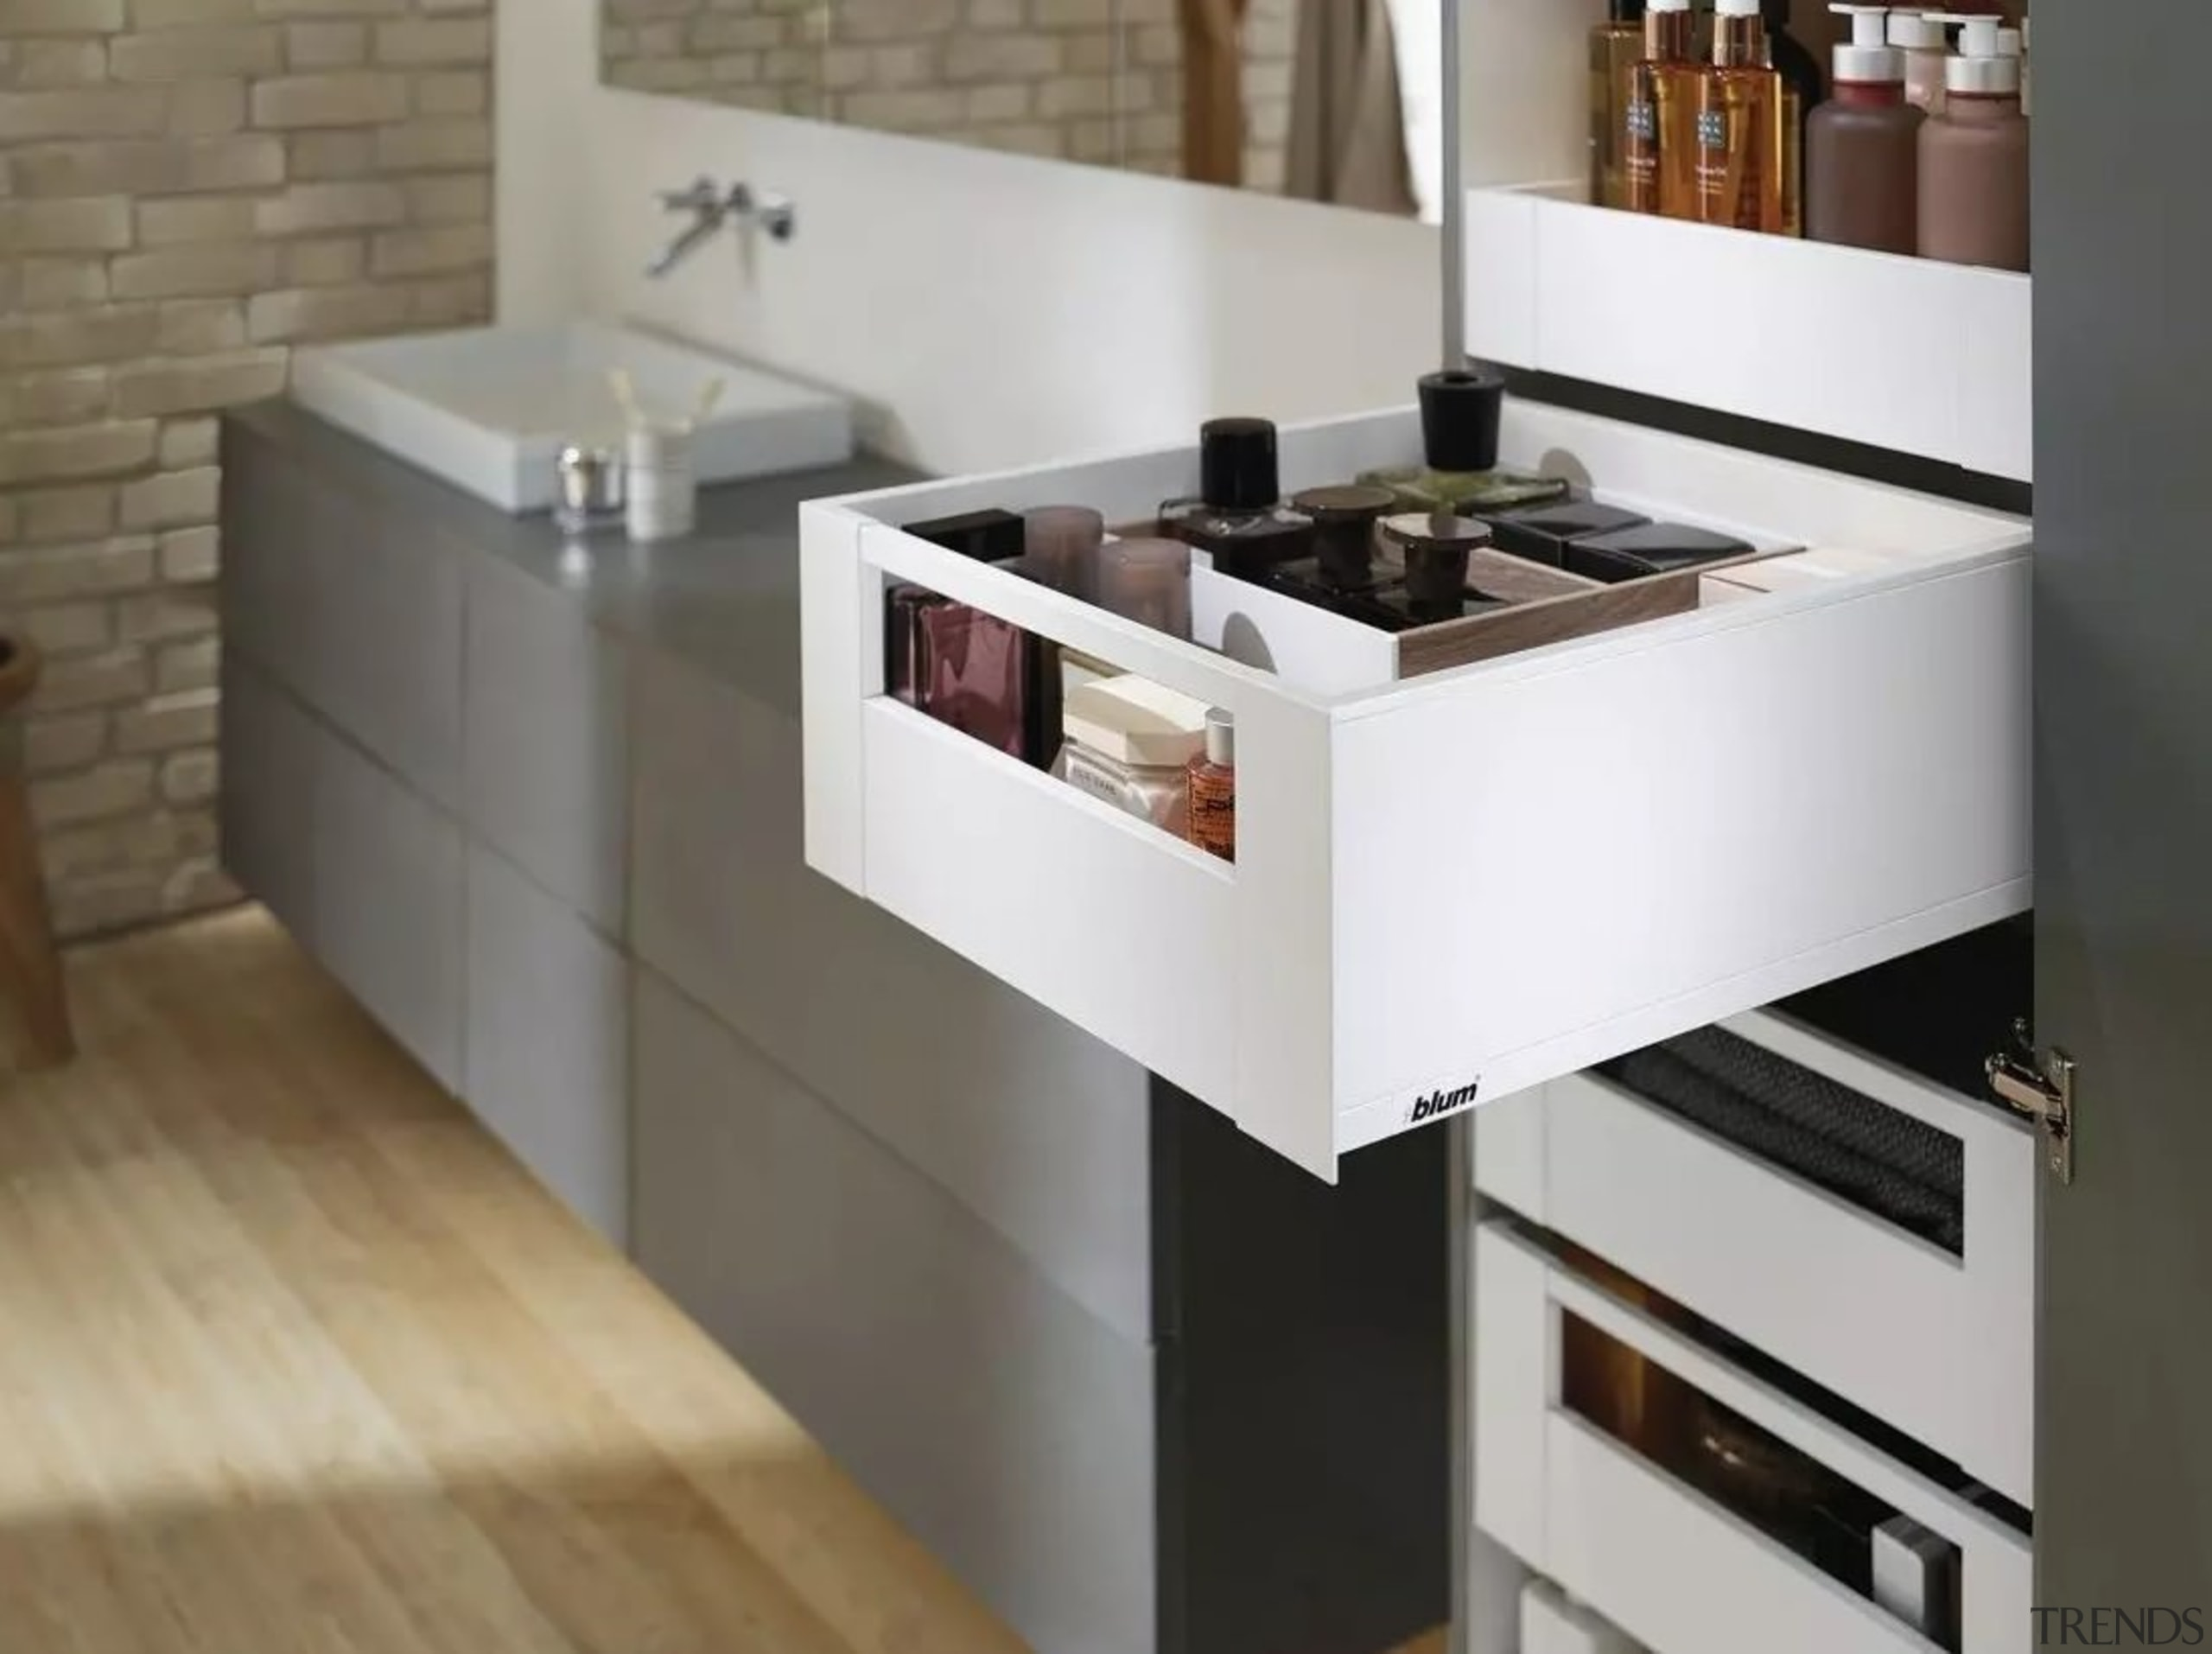 Learn more about Space Tower on the cabinetry, countertop, drawer, floor, furniture, home appliance, interior design, kitchen, kitchen stove, product design, sink, table, gray